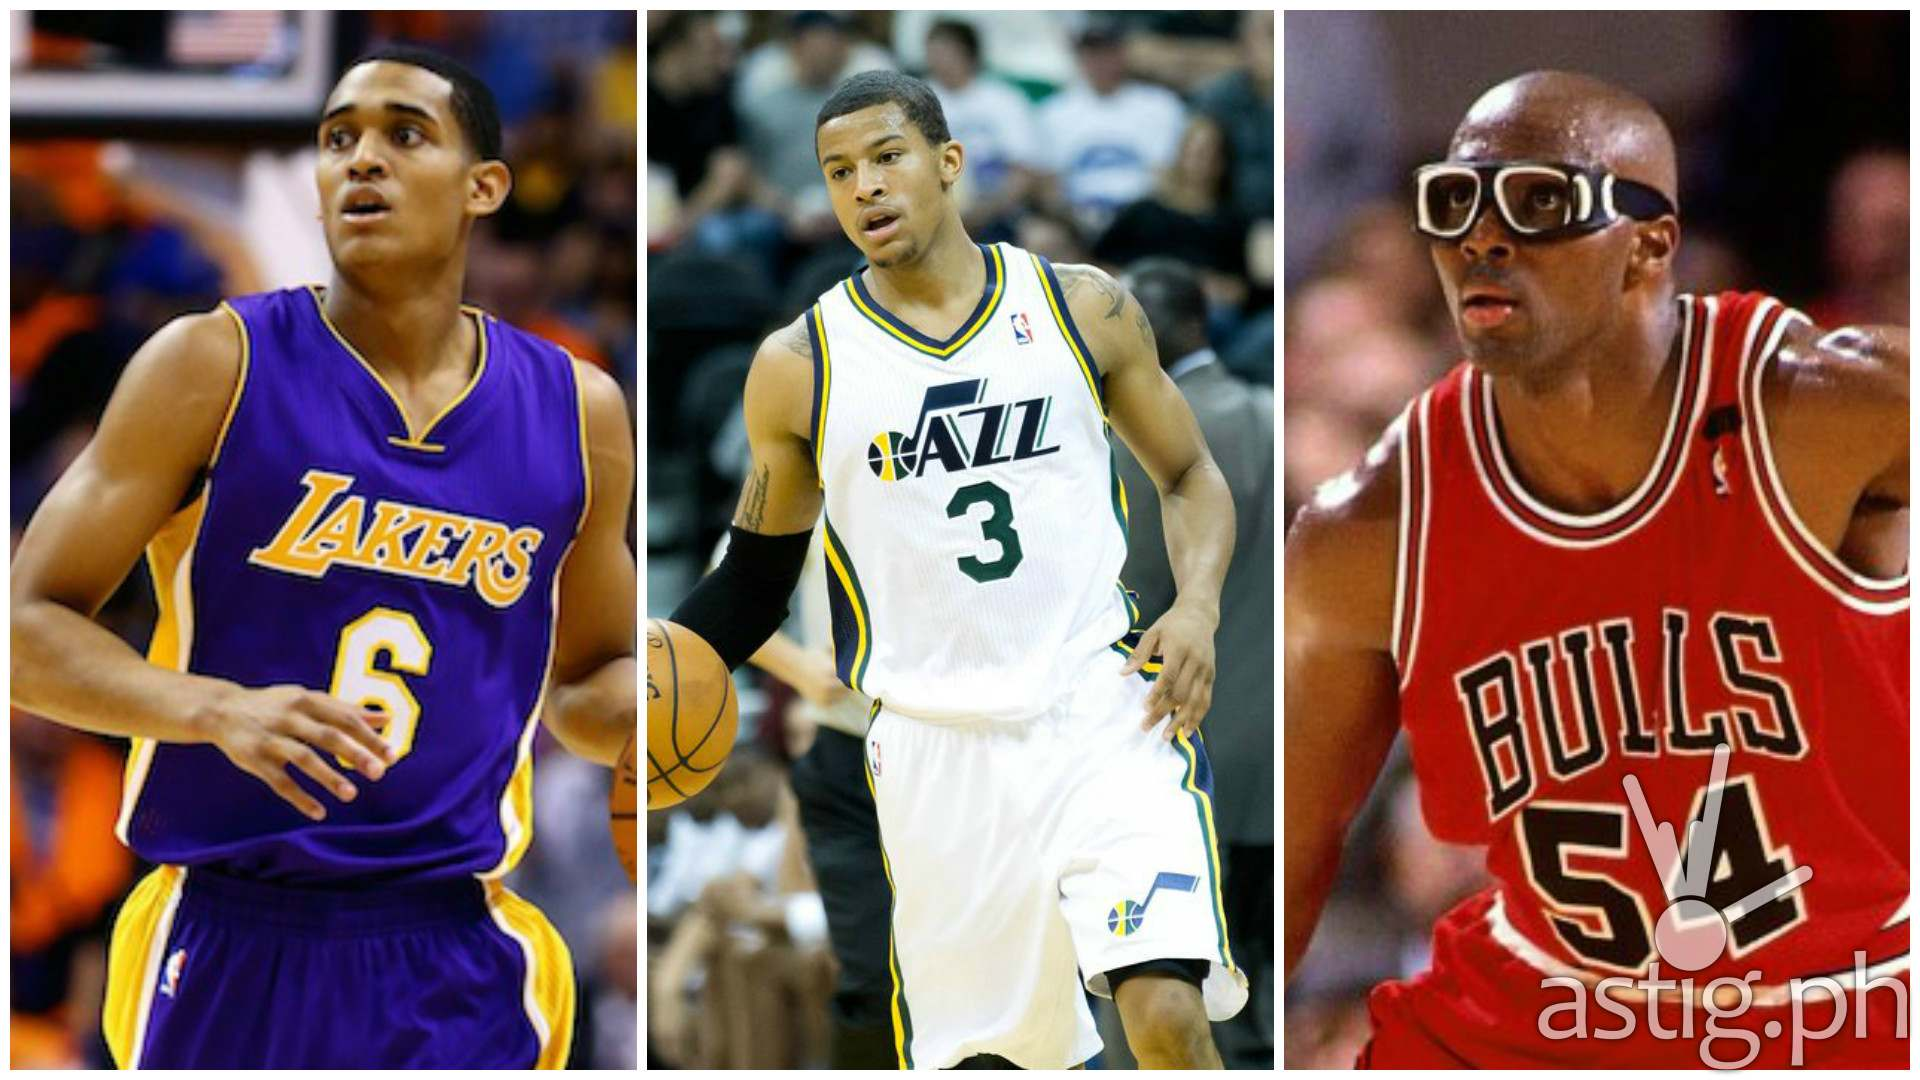 Jordan Clarkson, Trey Burke, Horace Grant (photo: Mark J. Rebilas USA TODAY Sports, Rusell Isabella USA TODAY Sports, thehoopdoctors.com)